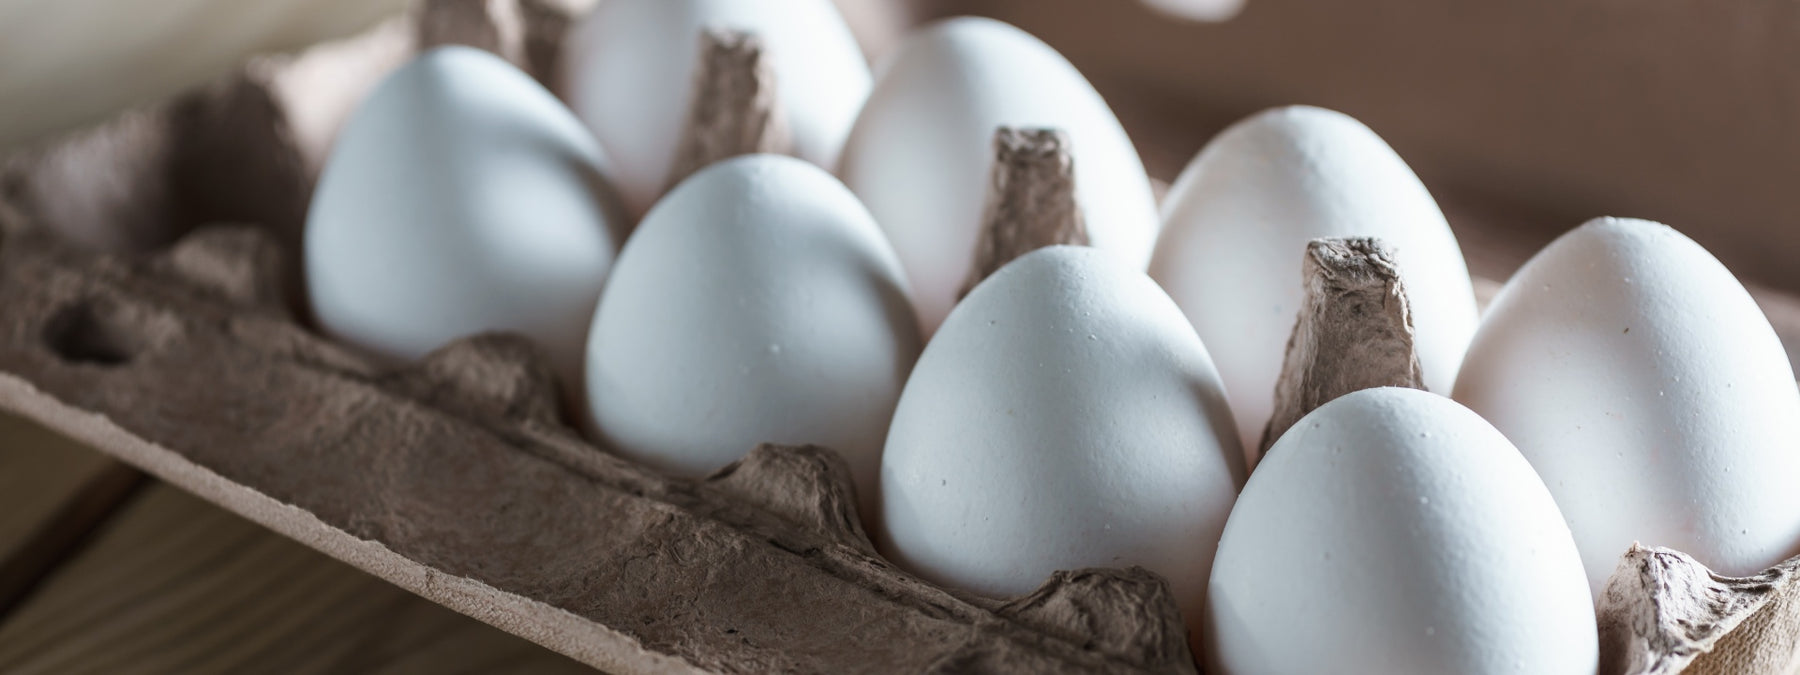 Egg White Nutrition: Better Than Whole Eggs?